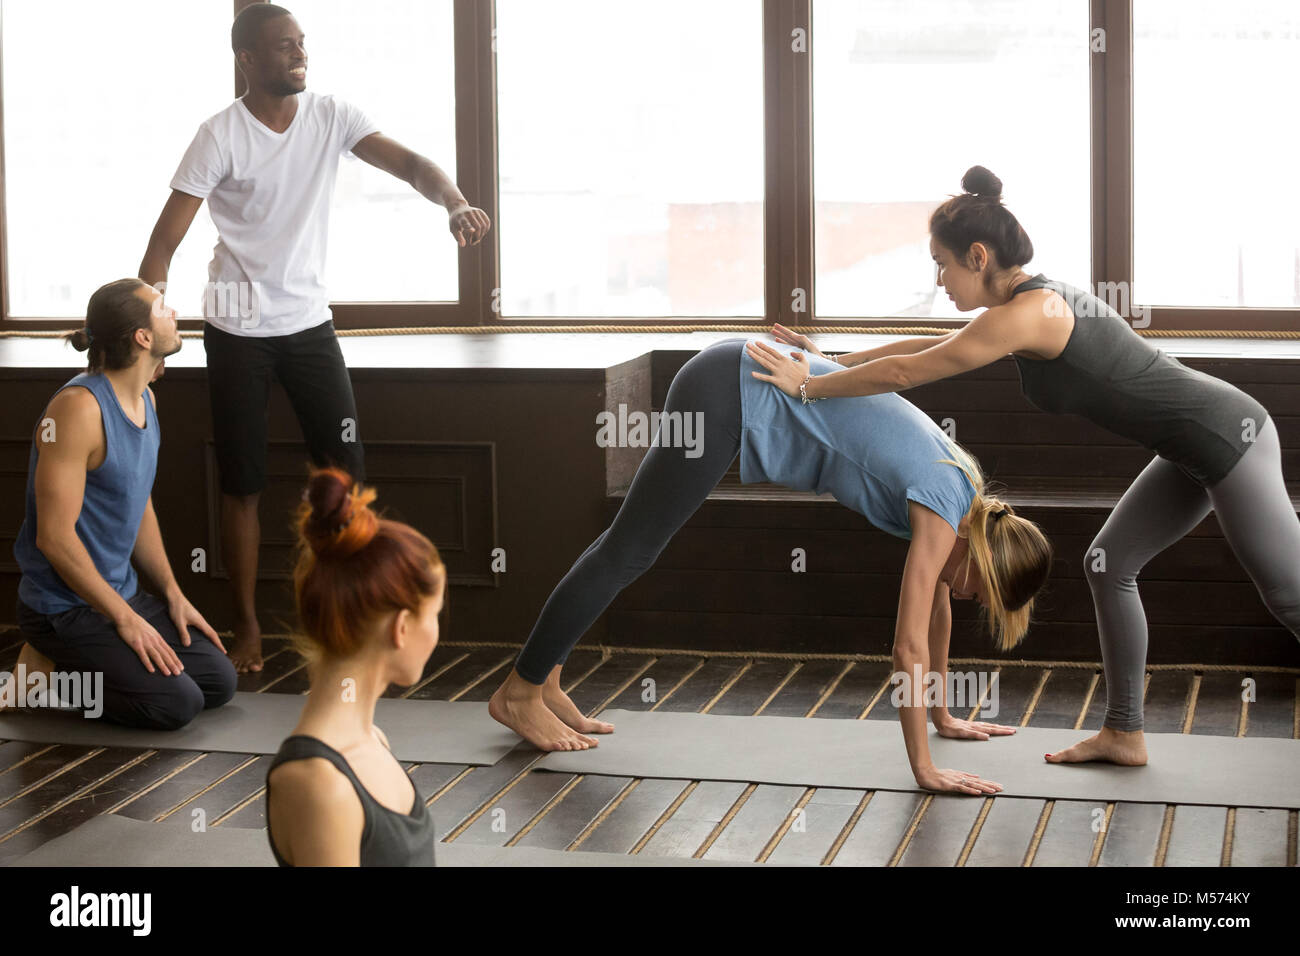 Yoga teacher assisting woman doing downward facing dog stretchin - Stock Image